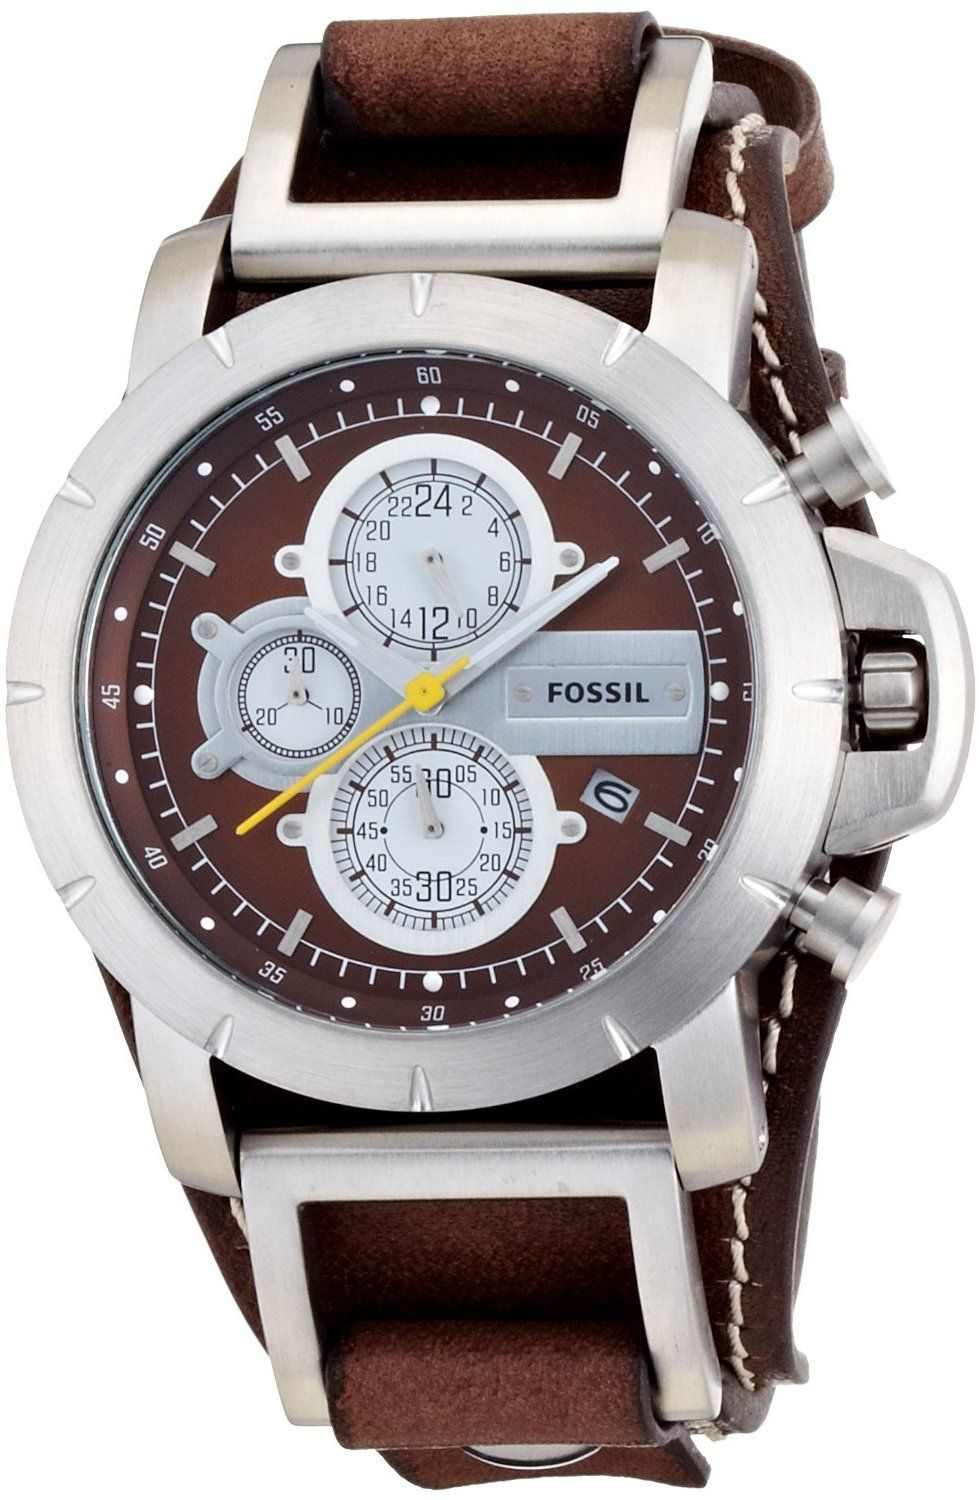 Relojes Fossil Para Hombres · Relojes Geniales · Fossil Men s JR1157 Brown  Leather Strap Brown Analog Dial Chronograph Watch    89.00   Fossil Watch e0922ca3558a